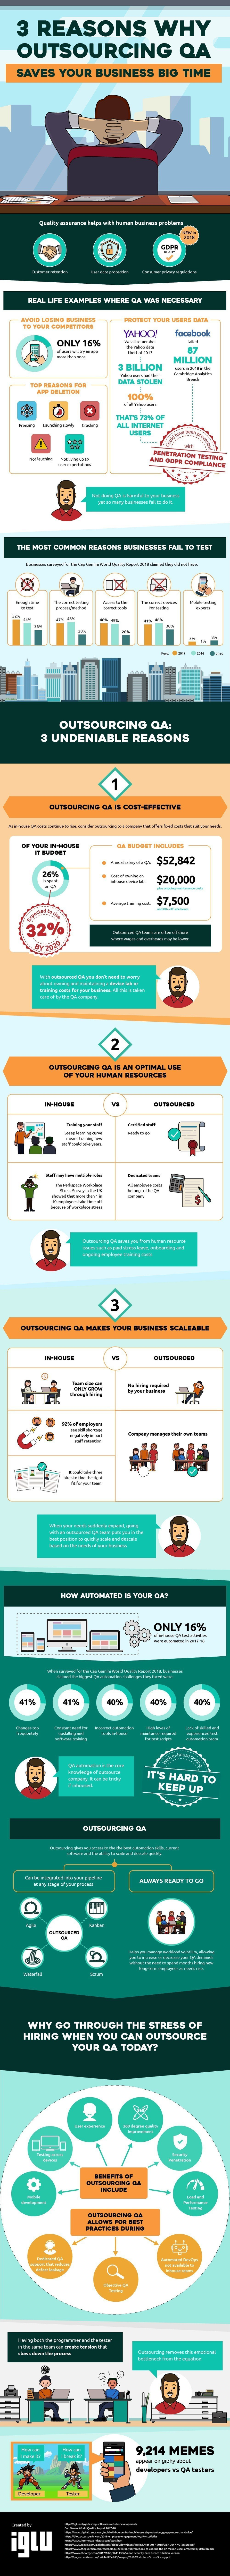 3 Reasons To Outsource Your Software QA